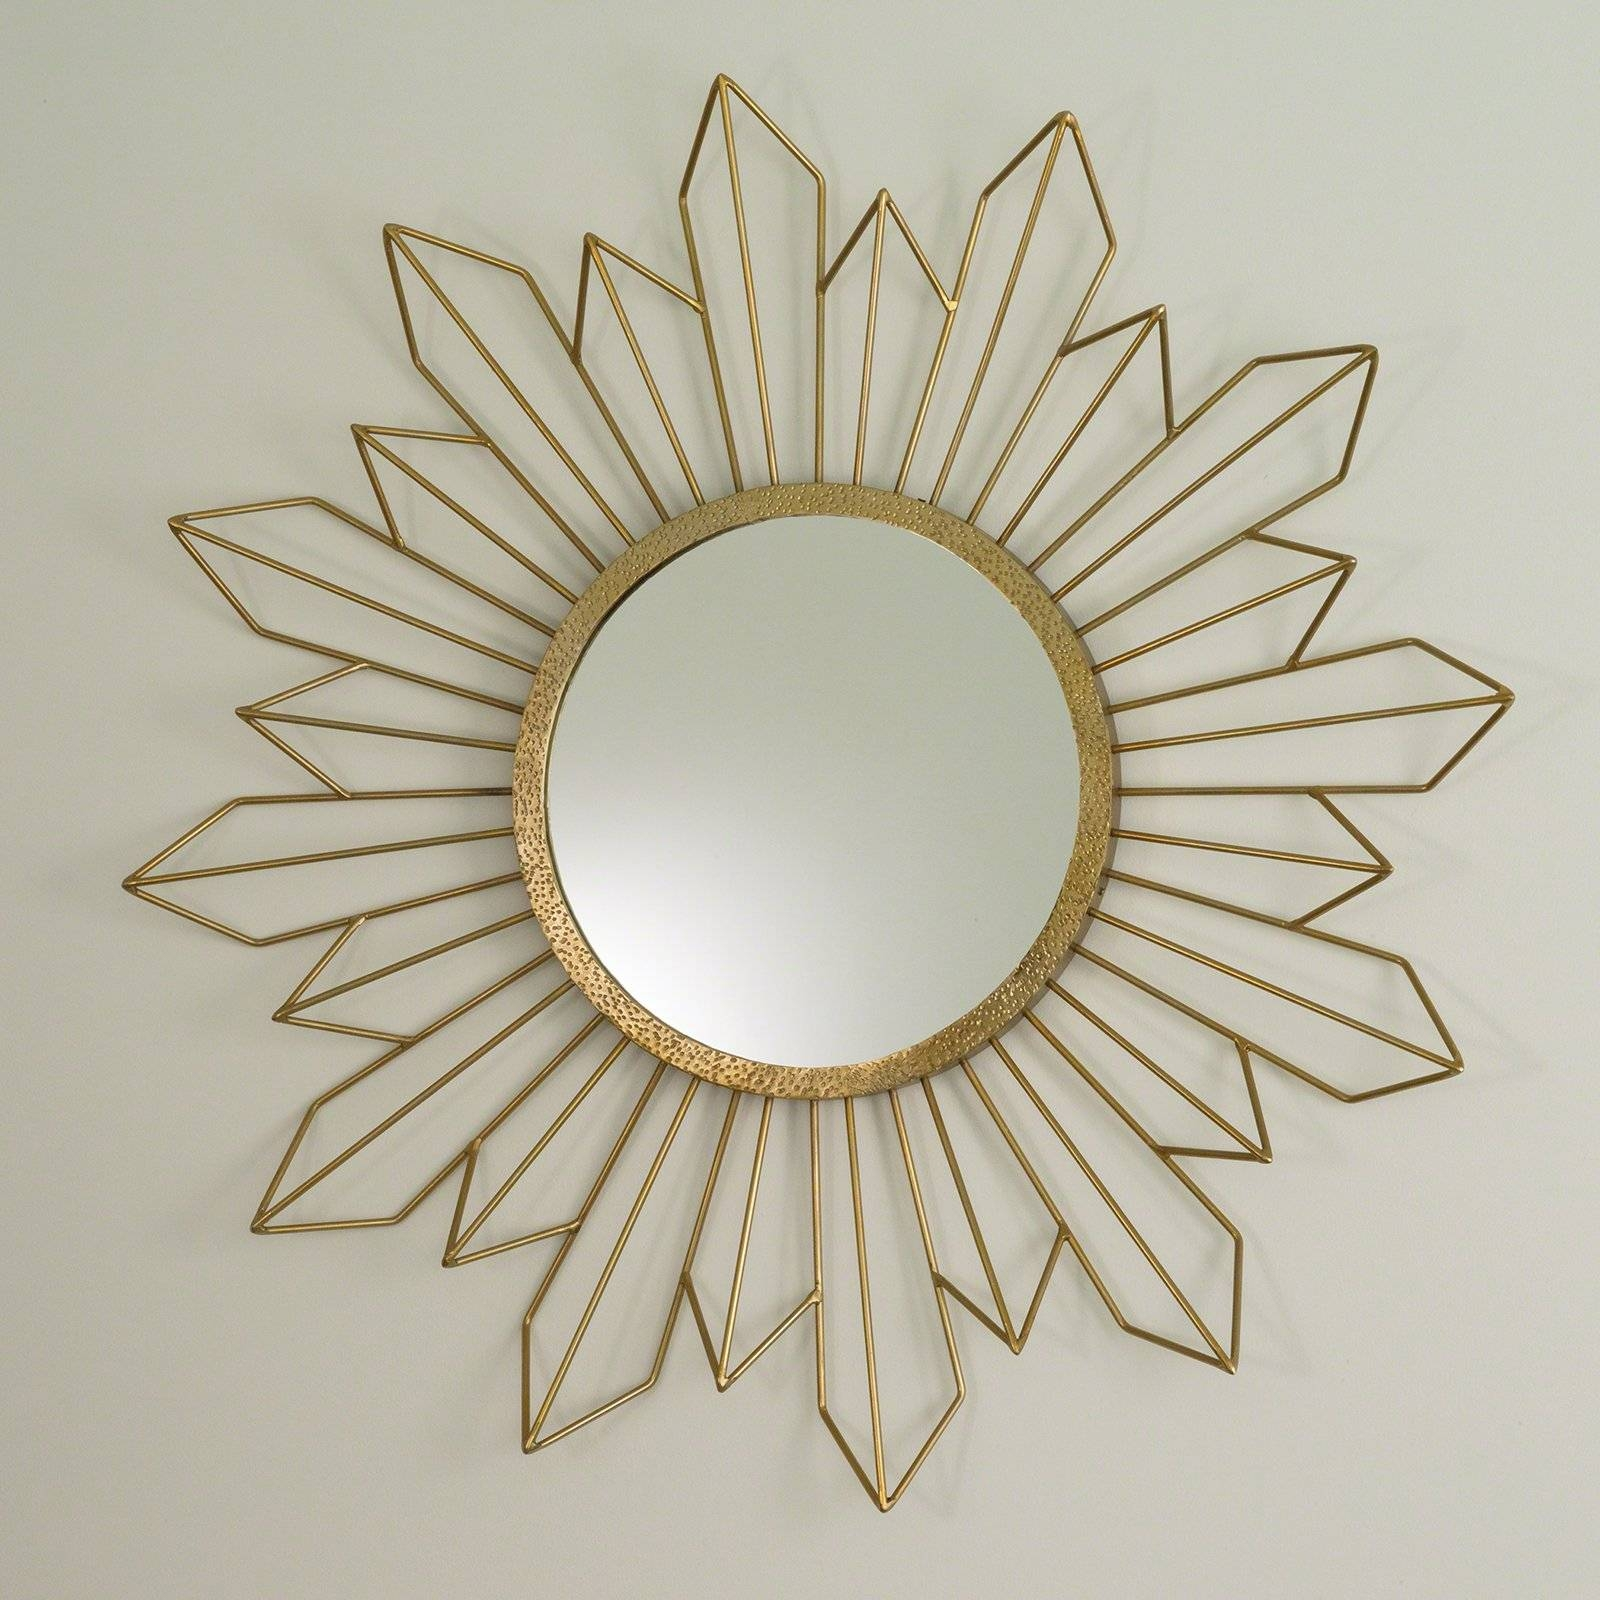 Afina Radiance Round Gear Tilt Mirror - 24 Diam. In. | Hayneedle in Gold Round Mirrors (Image 3 of 25)